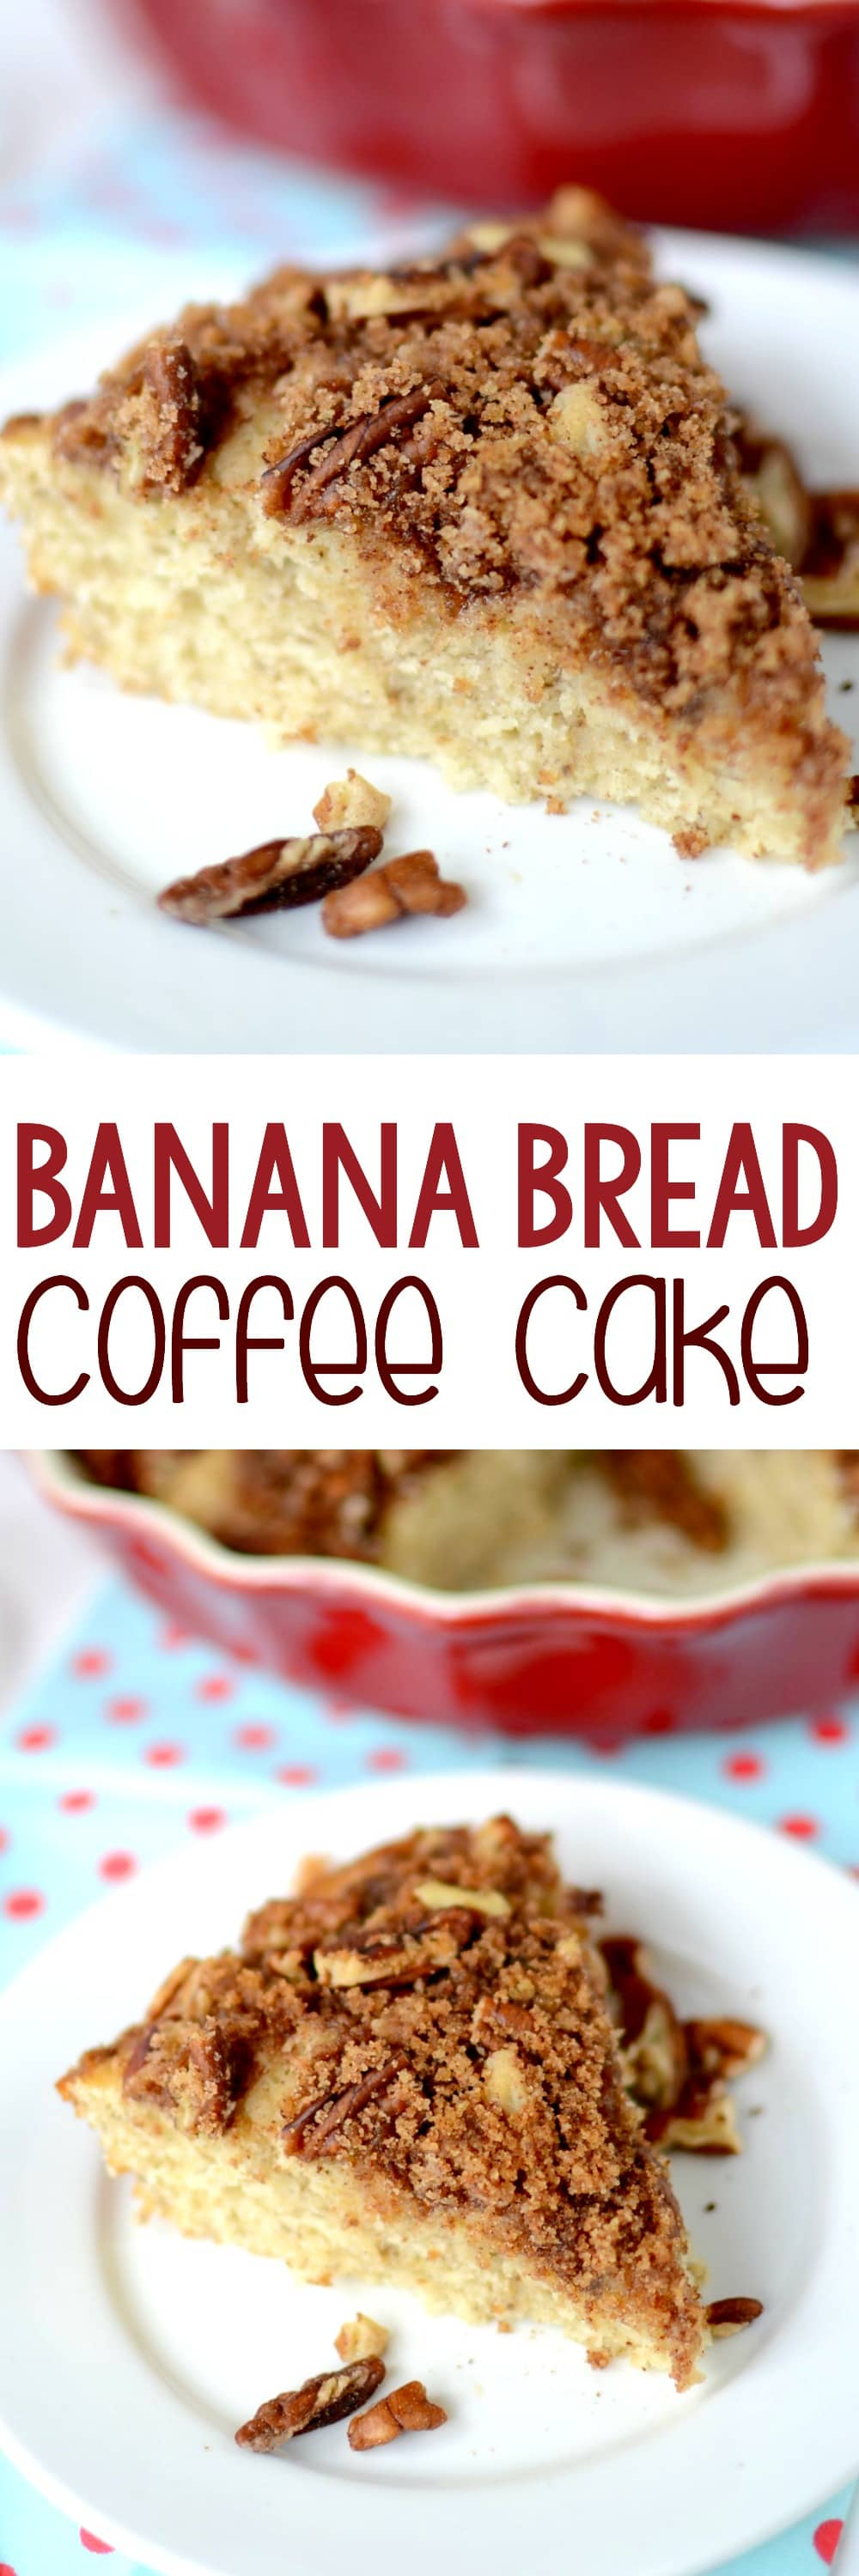 Banana Bread Coffee Cake - this EASY coffee cake recipe is full of banana bread flavor with a nutty streusel on top! It's everyone's favorite breakfast or brunch recipe!